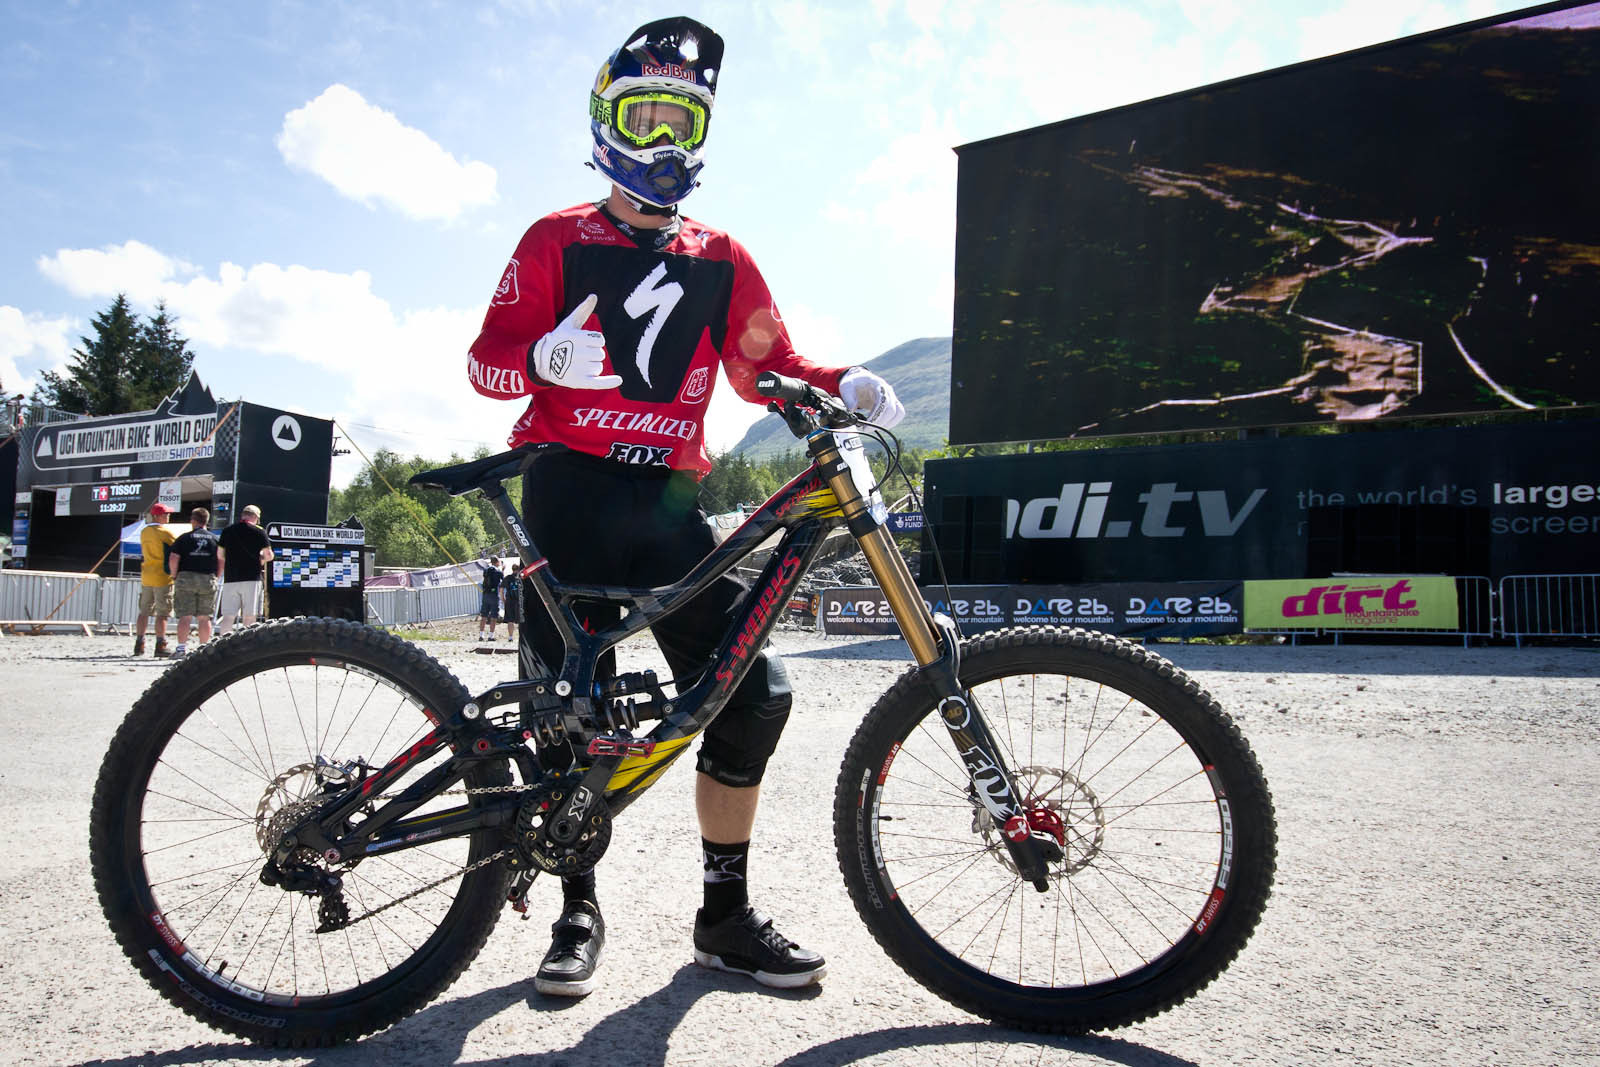 Aaron Gwin's Specialized TLD Demo 8 Carbon - 24 Pro DH BIkes from Fort William World Cup - Mountain Biking Pictures - Vital MTB